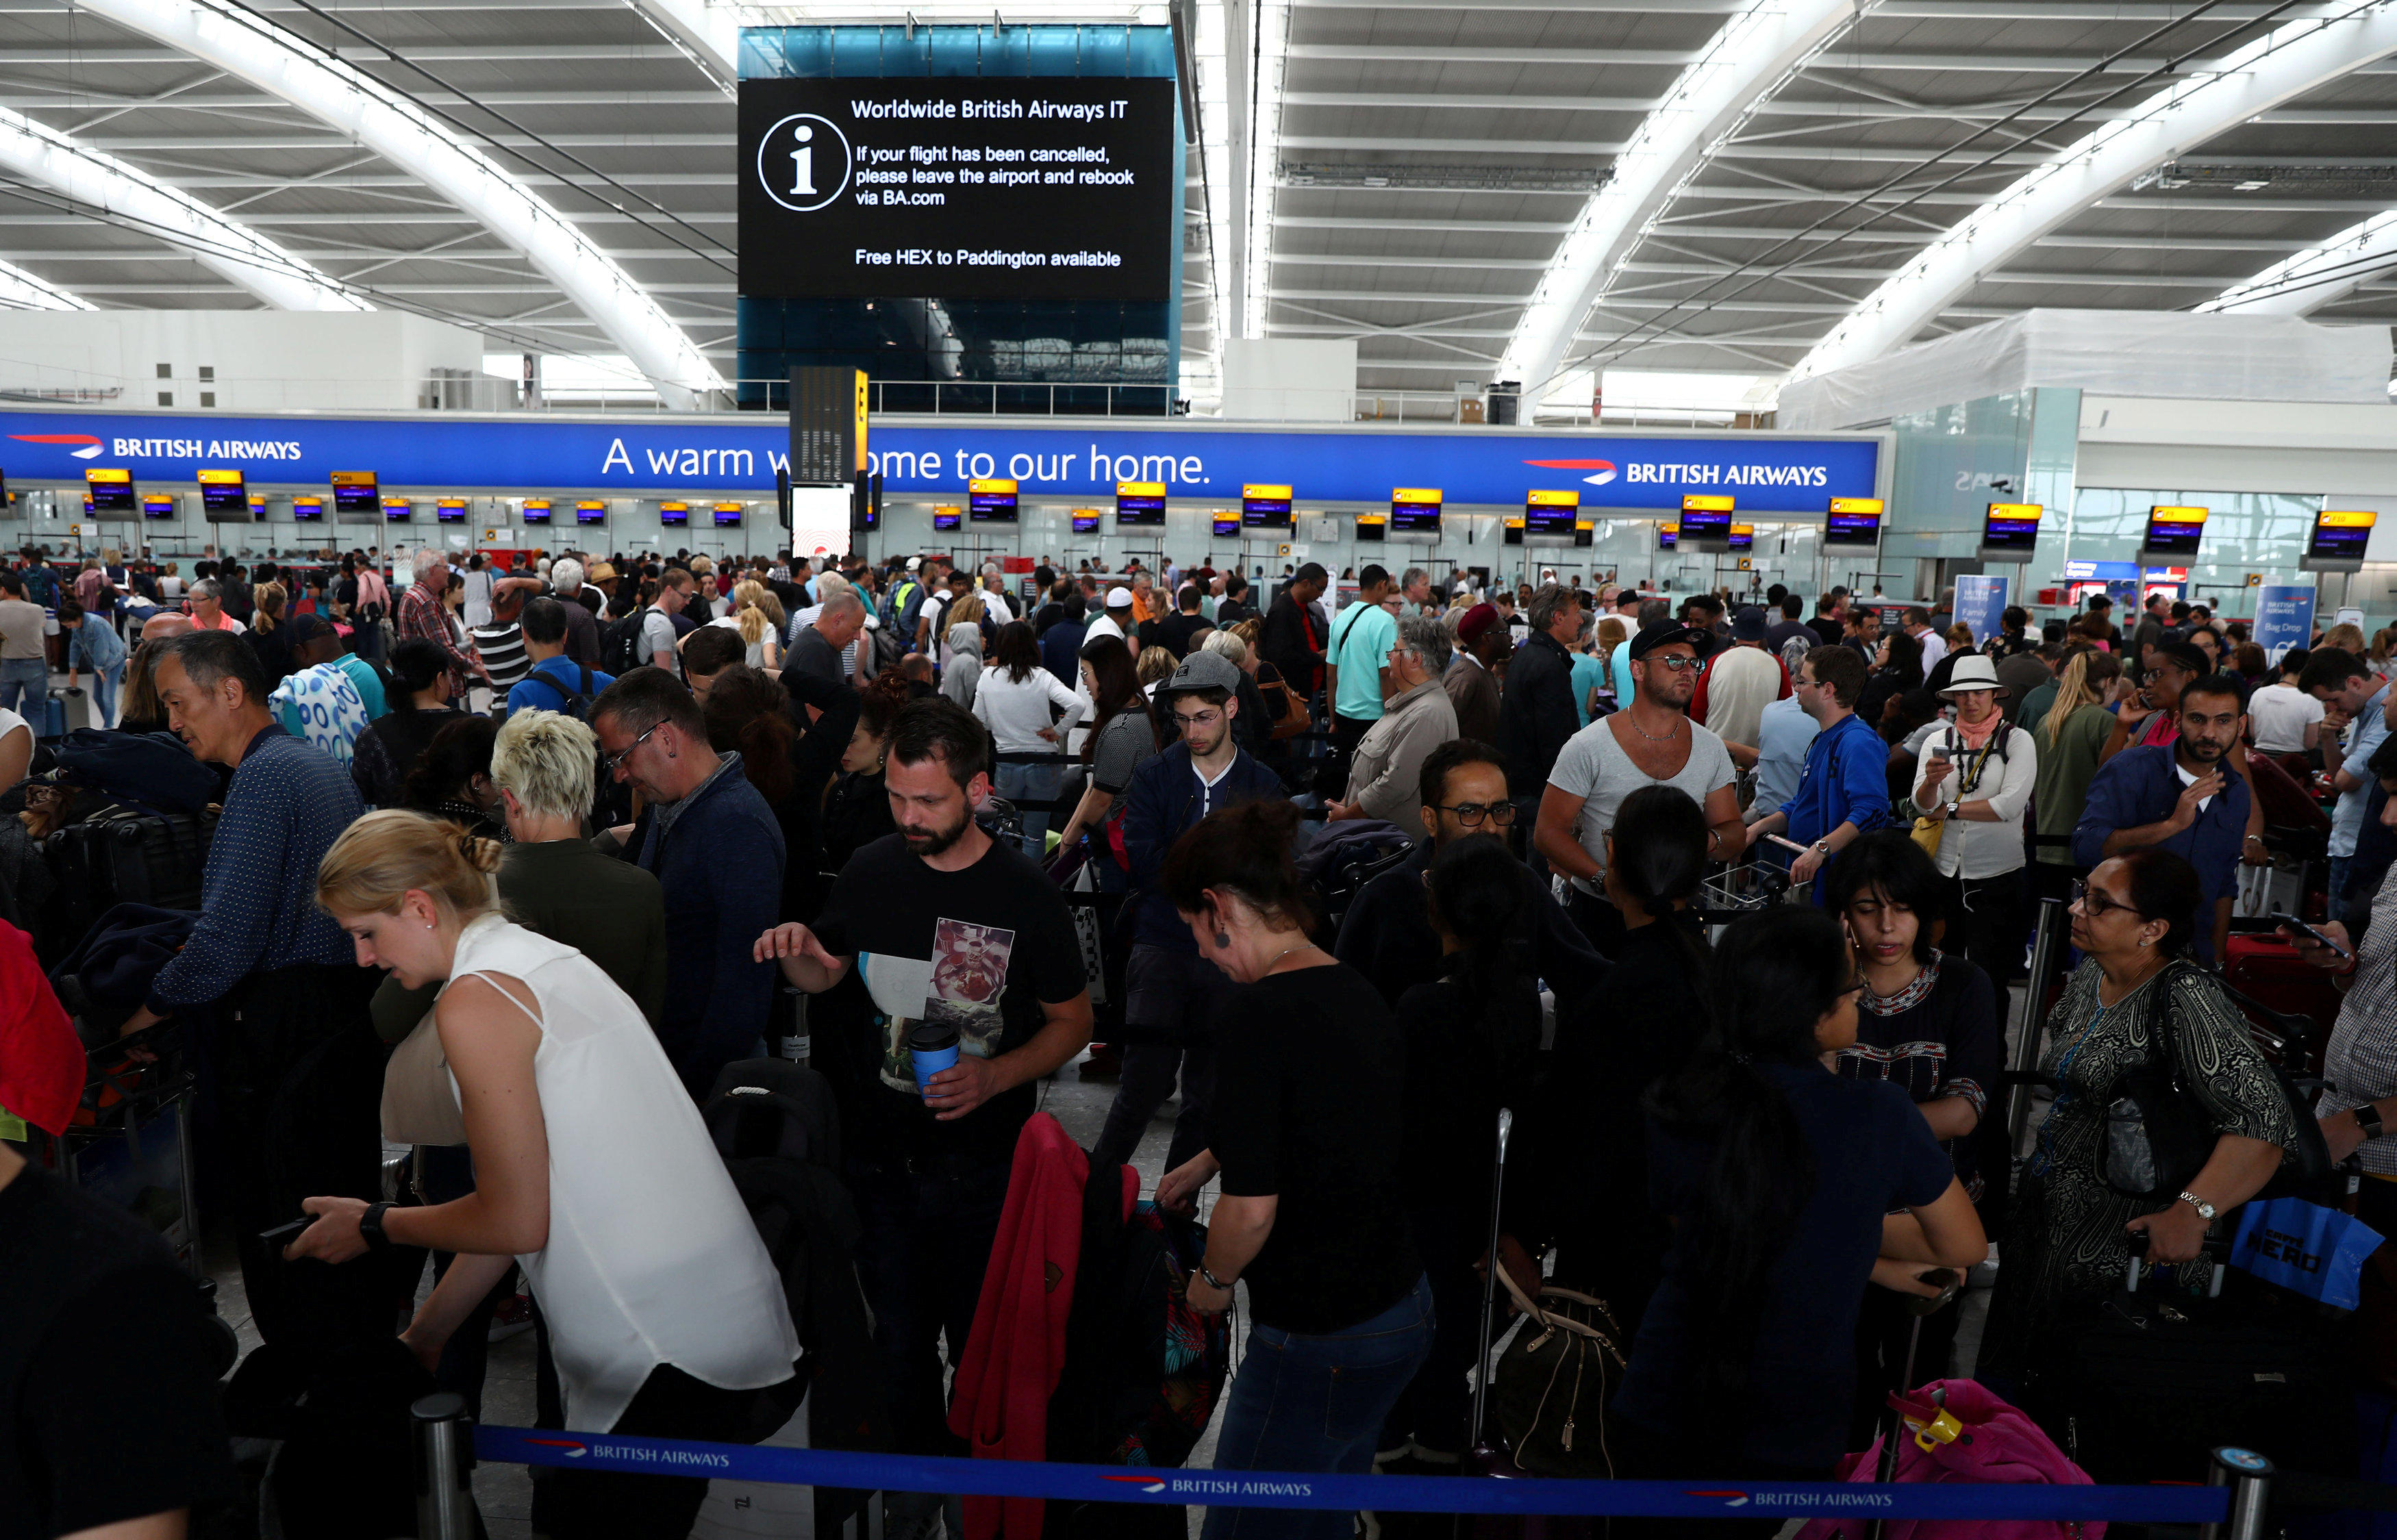 British Airways travelers face third day of delays, cancellations after computer meltdown